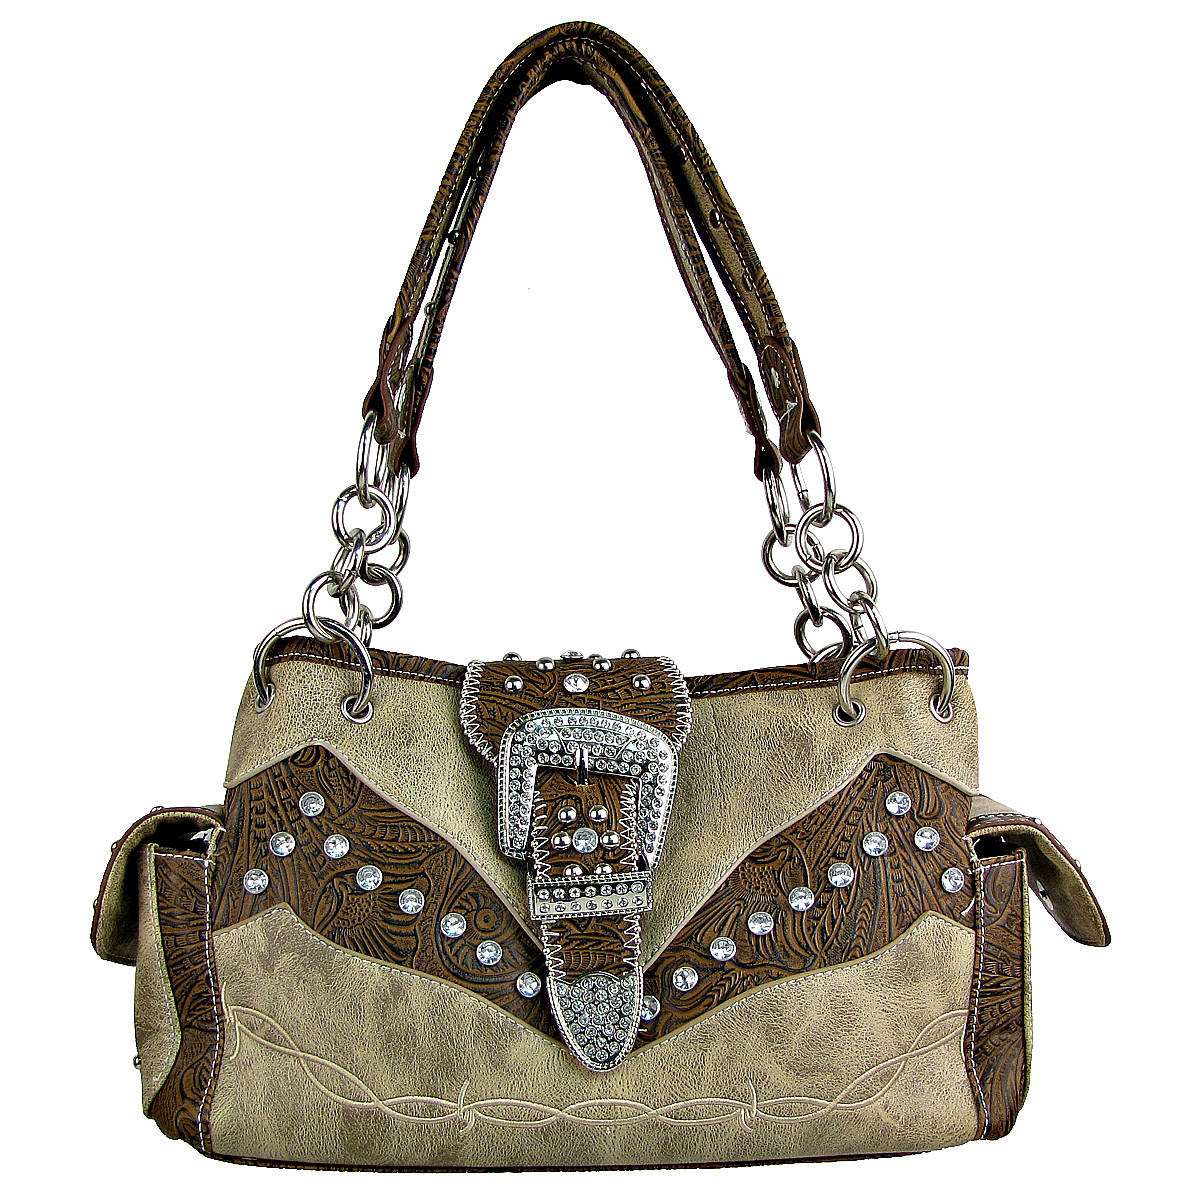 BEIGE TOOLED RHINESTONE BUCKLE LOOK WESTERN SHOULDER HANDBAG HB1-C1009BEI